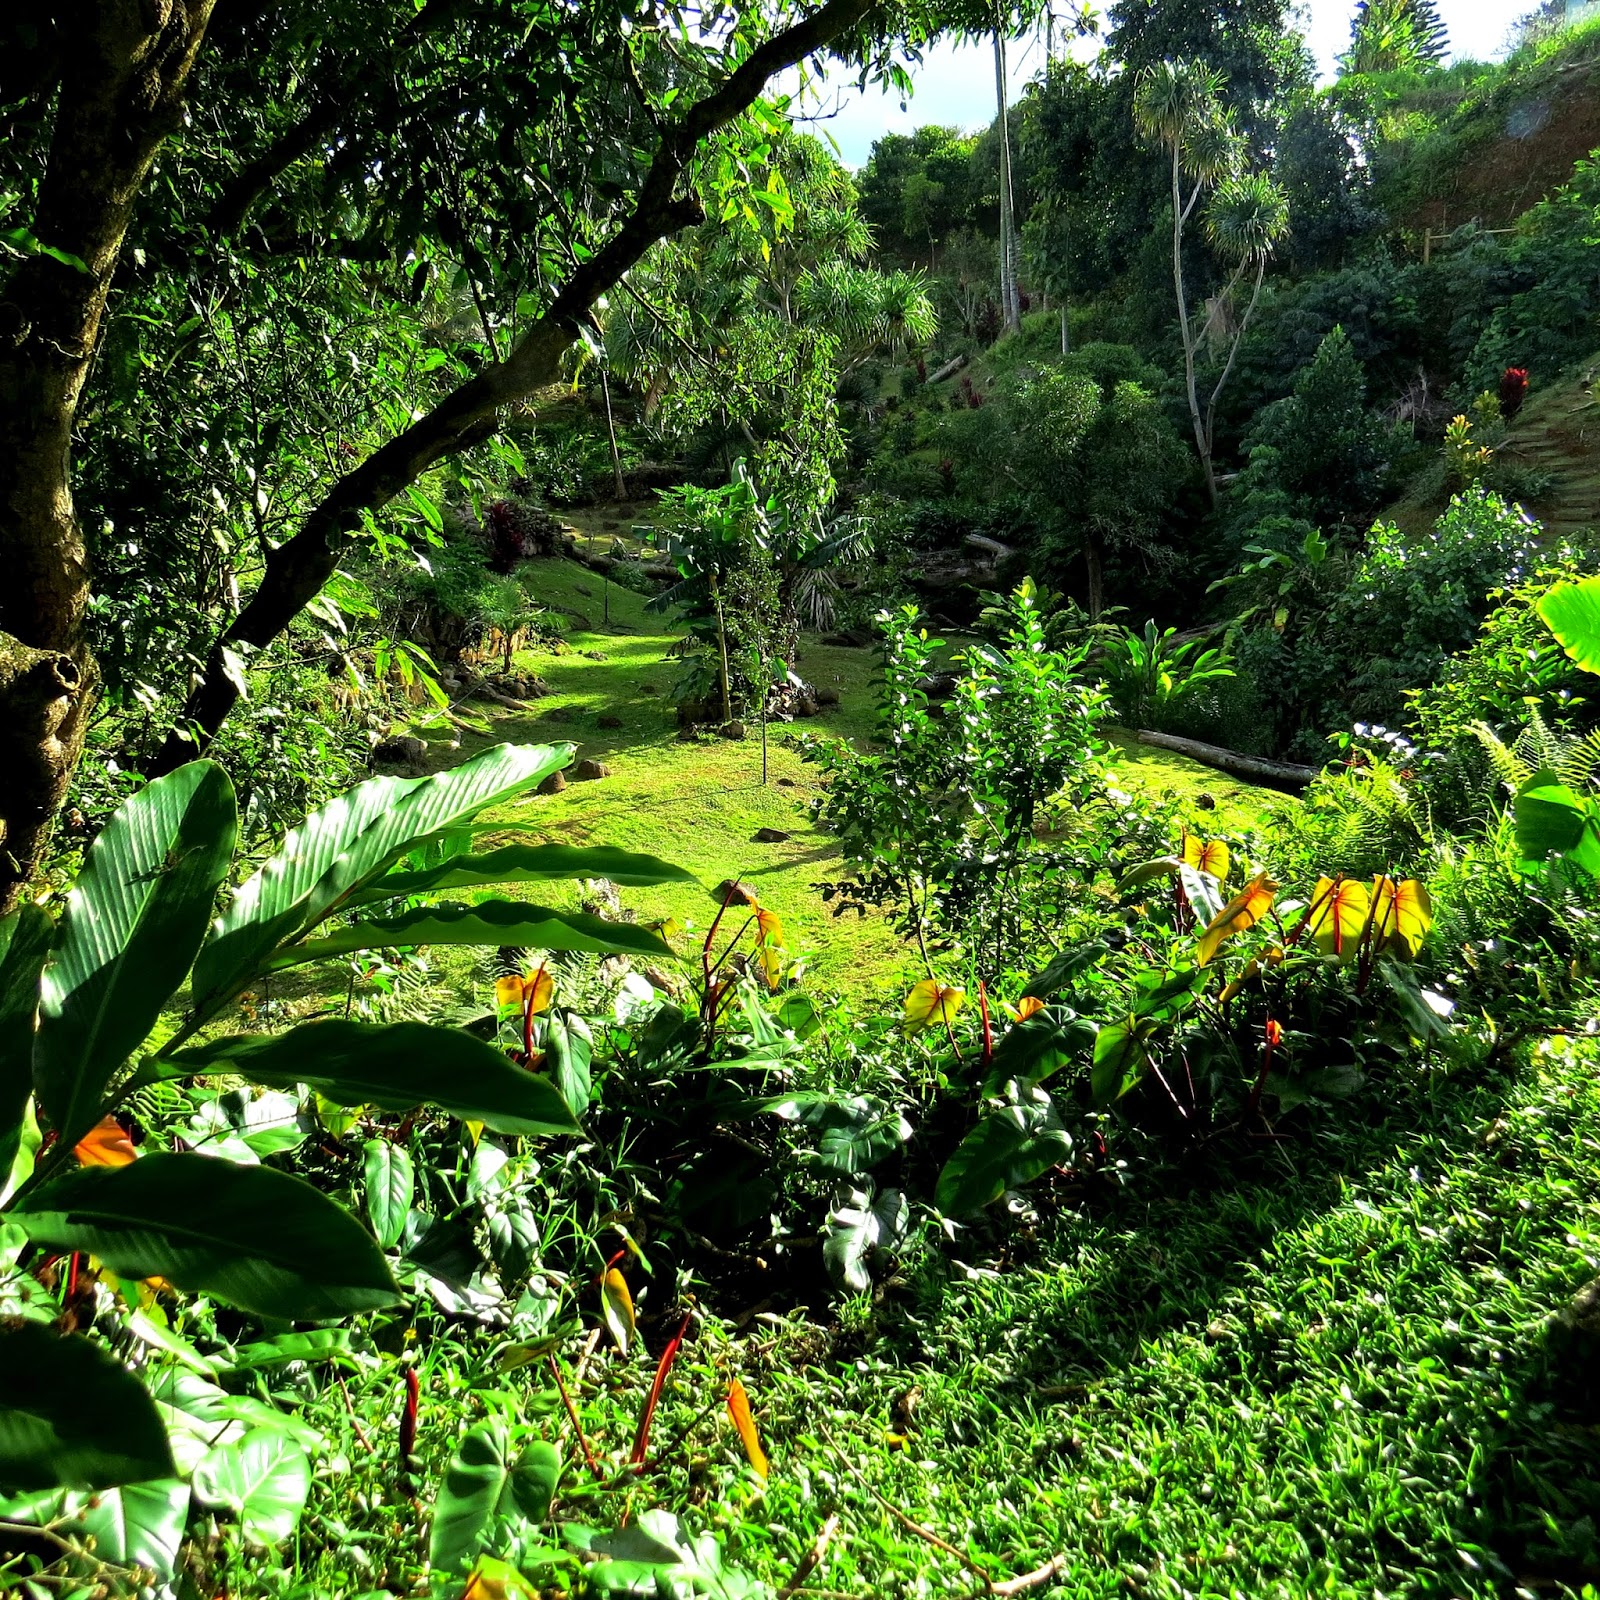 The Varying Shades Of Green And Lush Plants, Flowers And Tree Add To The  Exquisite Beauty Of The Princeville Botanical Gardens.